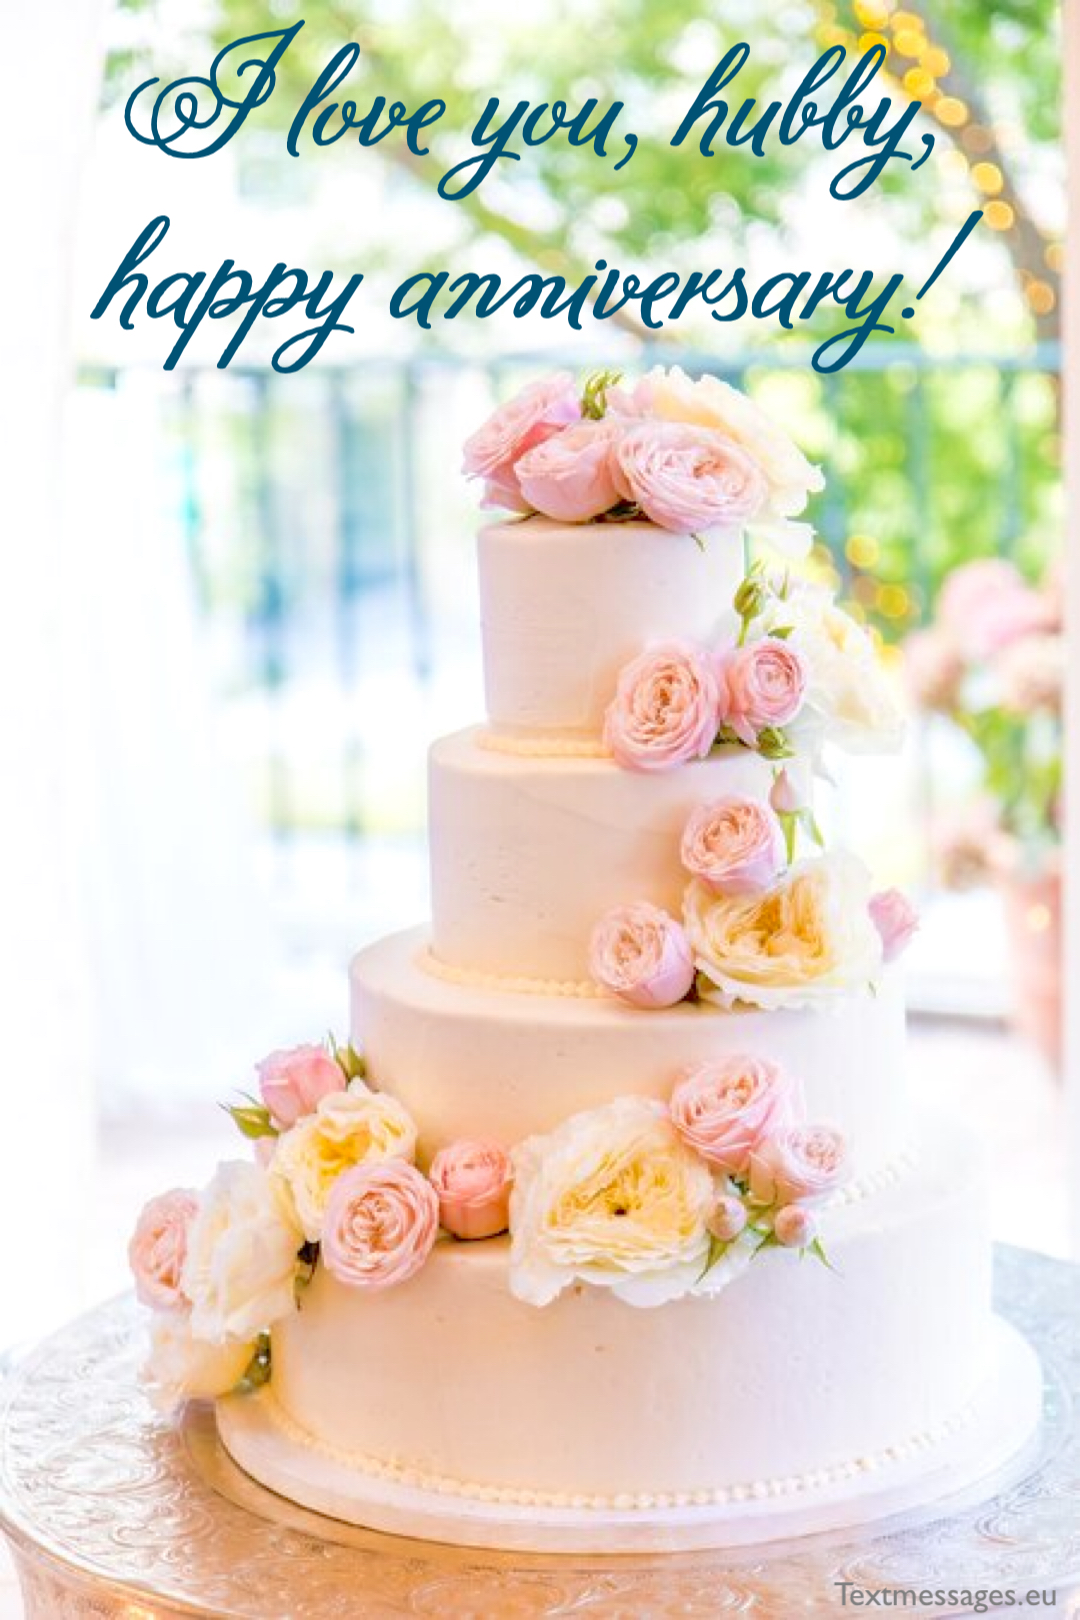 cute wedding anniversary wishes for husband images